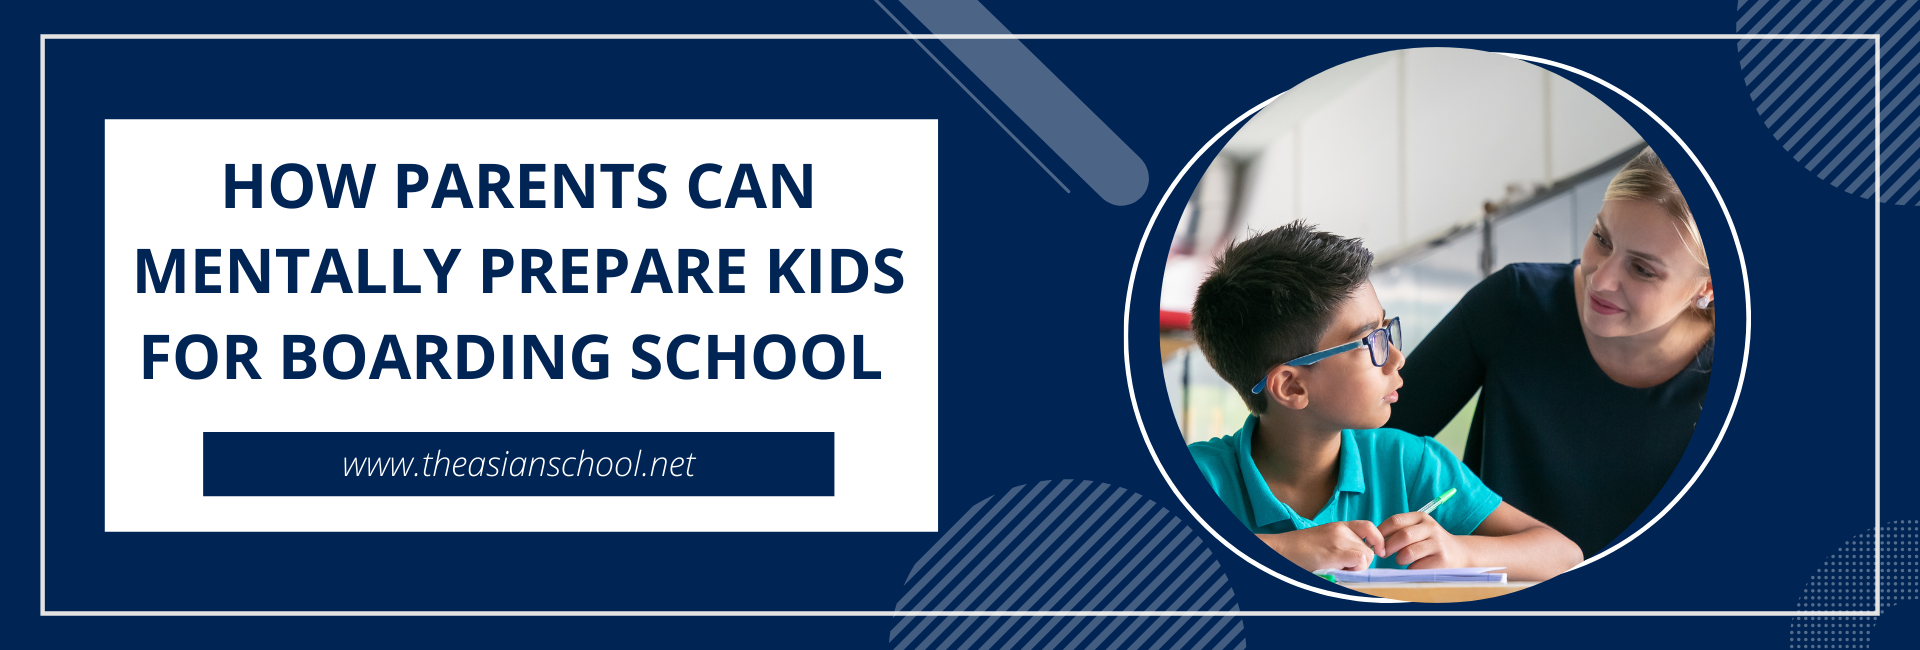 How Parents Can Mentally Prepare Kids For Boarding School